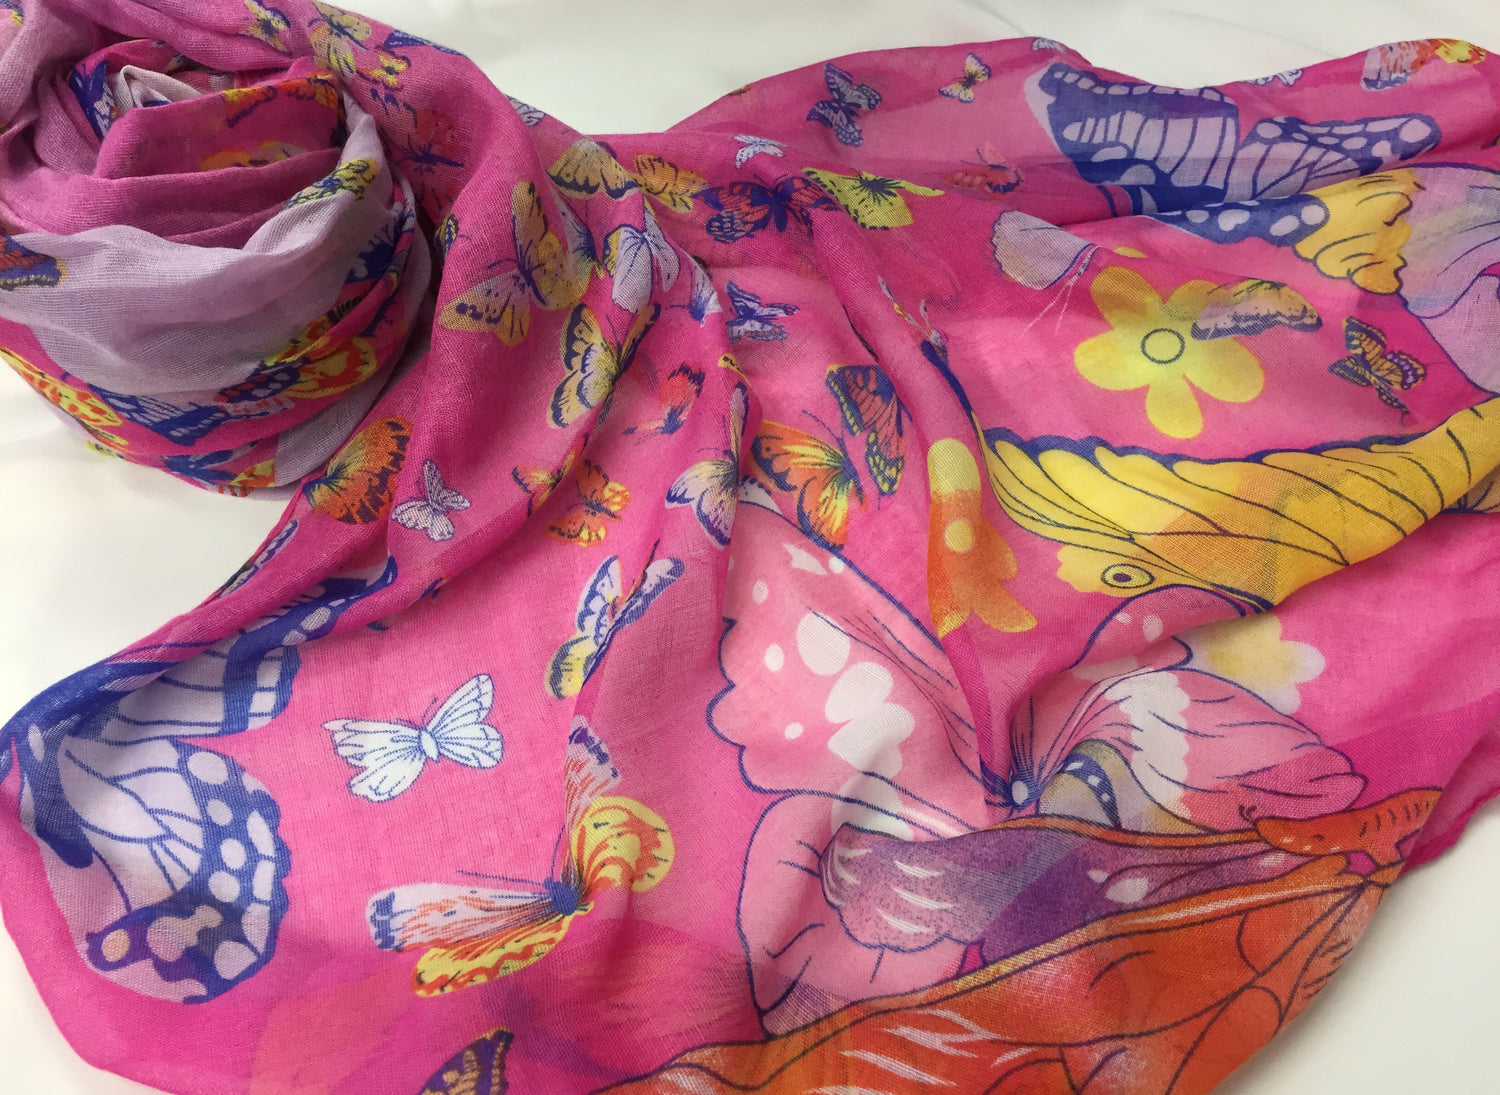 soft pink hijab printed with butterflies in green, pink, red, yellow, purple, and blue